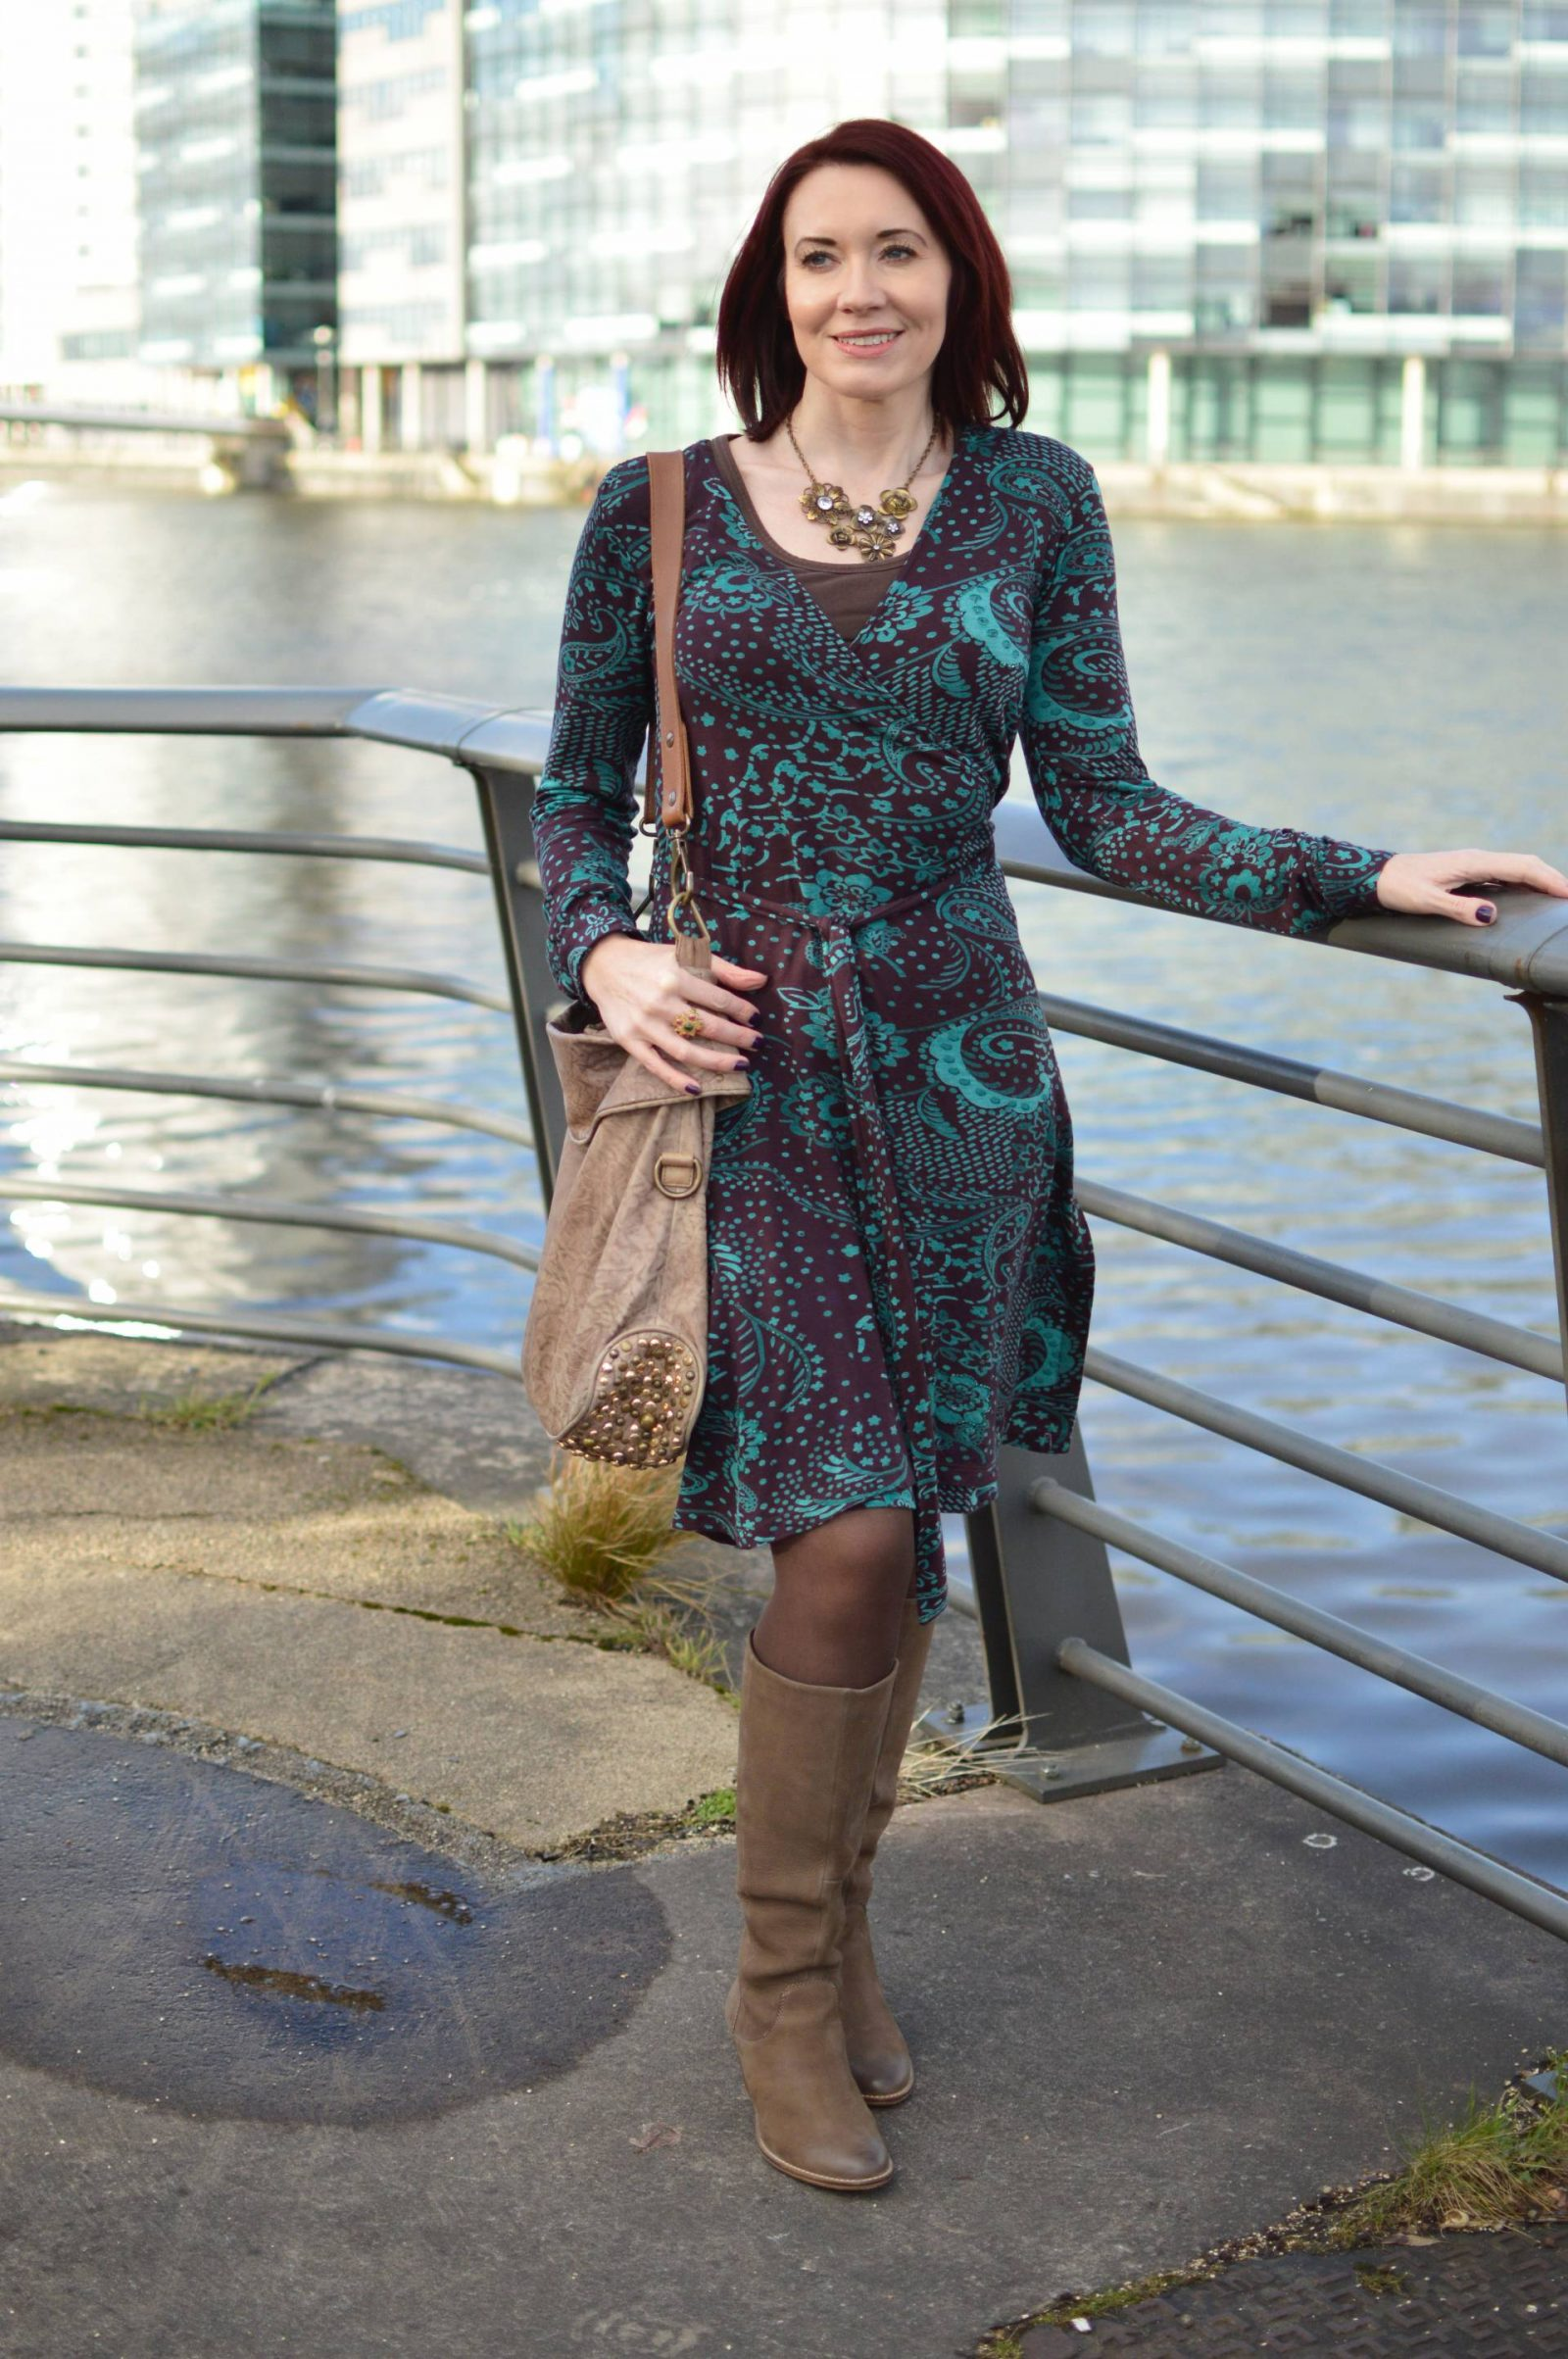 A Classic Wrap Dress Never Goes Out of Fashion